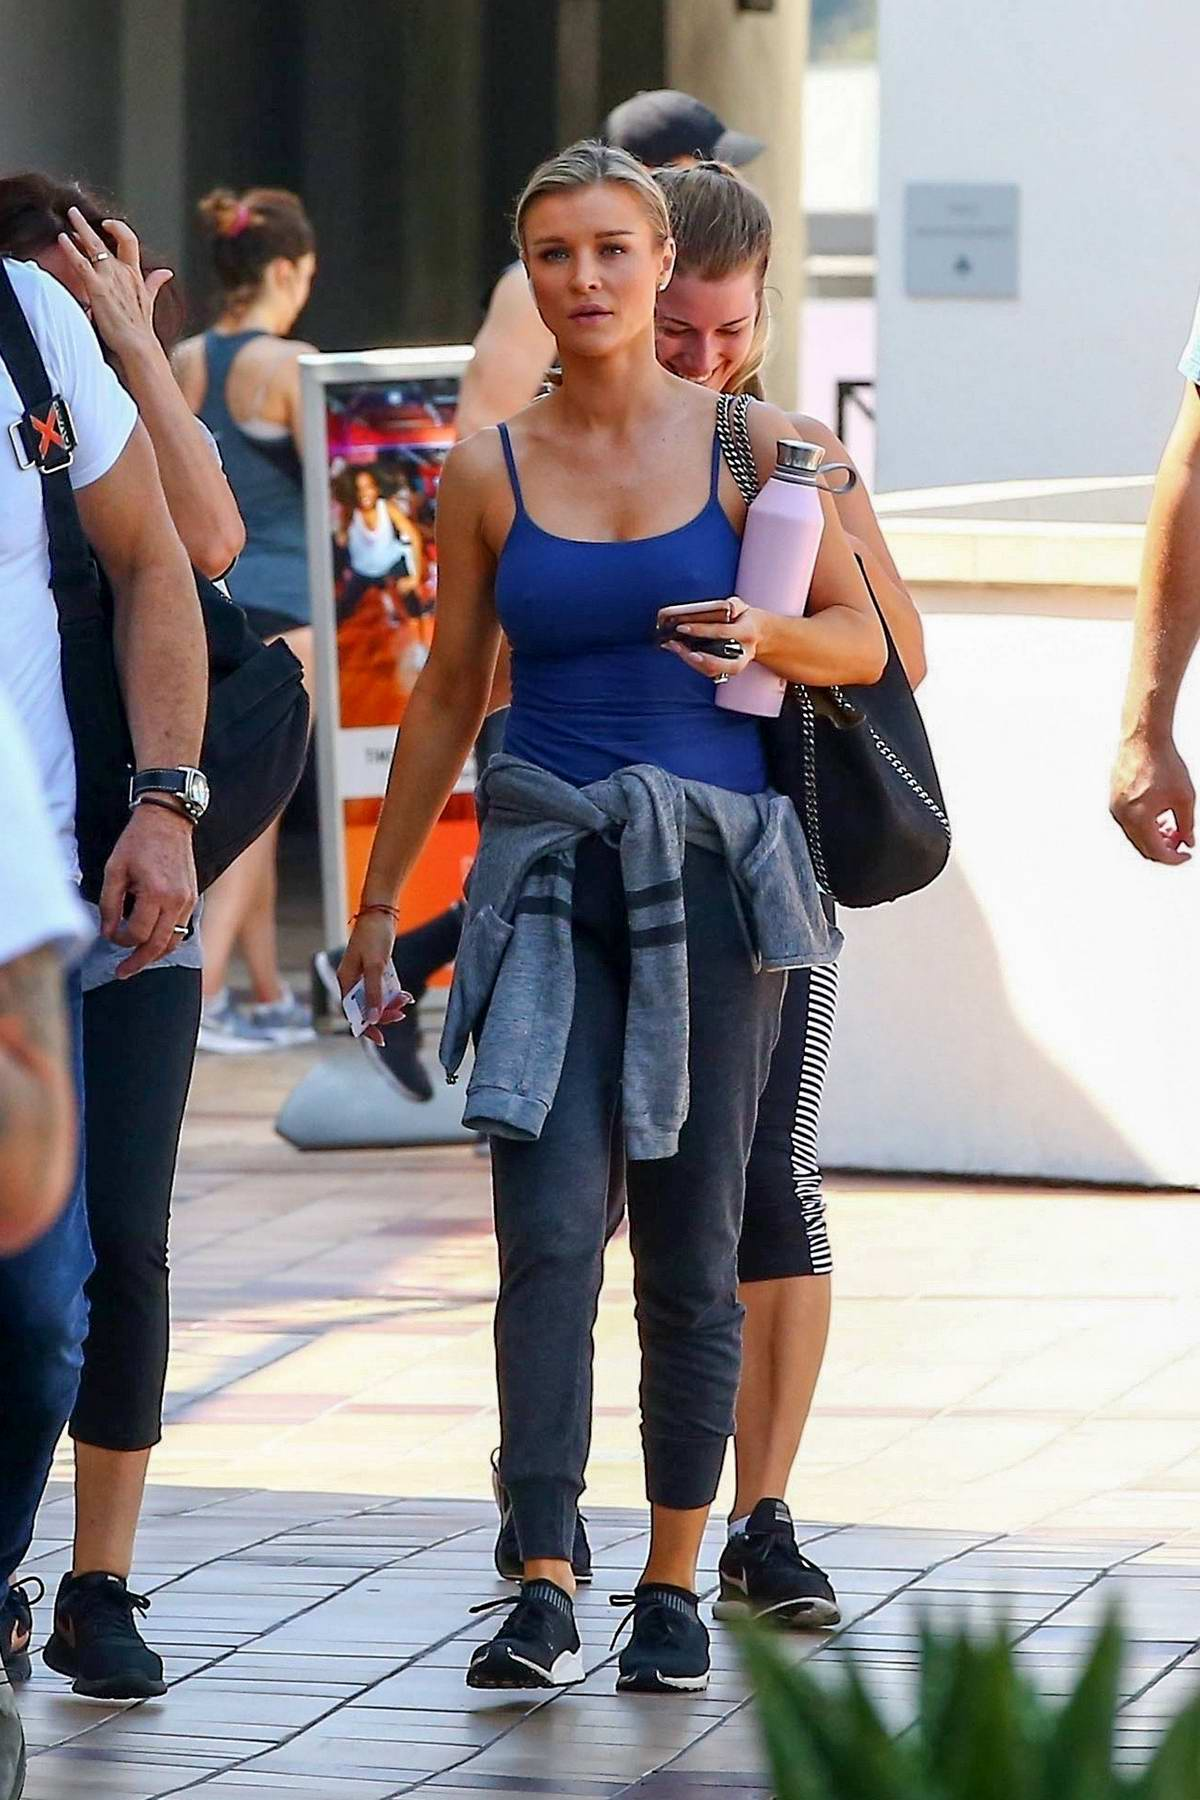 Joanna Krupa stops by a Starbucks after her workout session at Crunch Gym in West Hollywood, Los Angeles